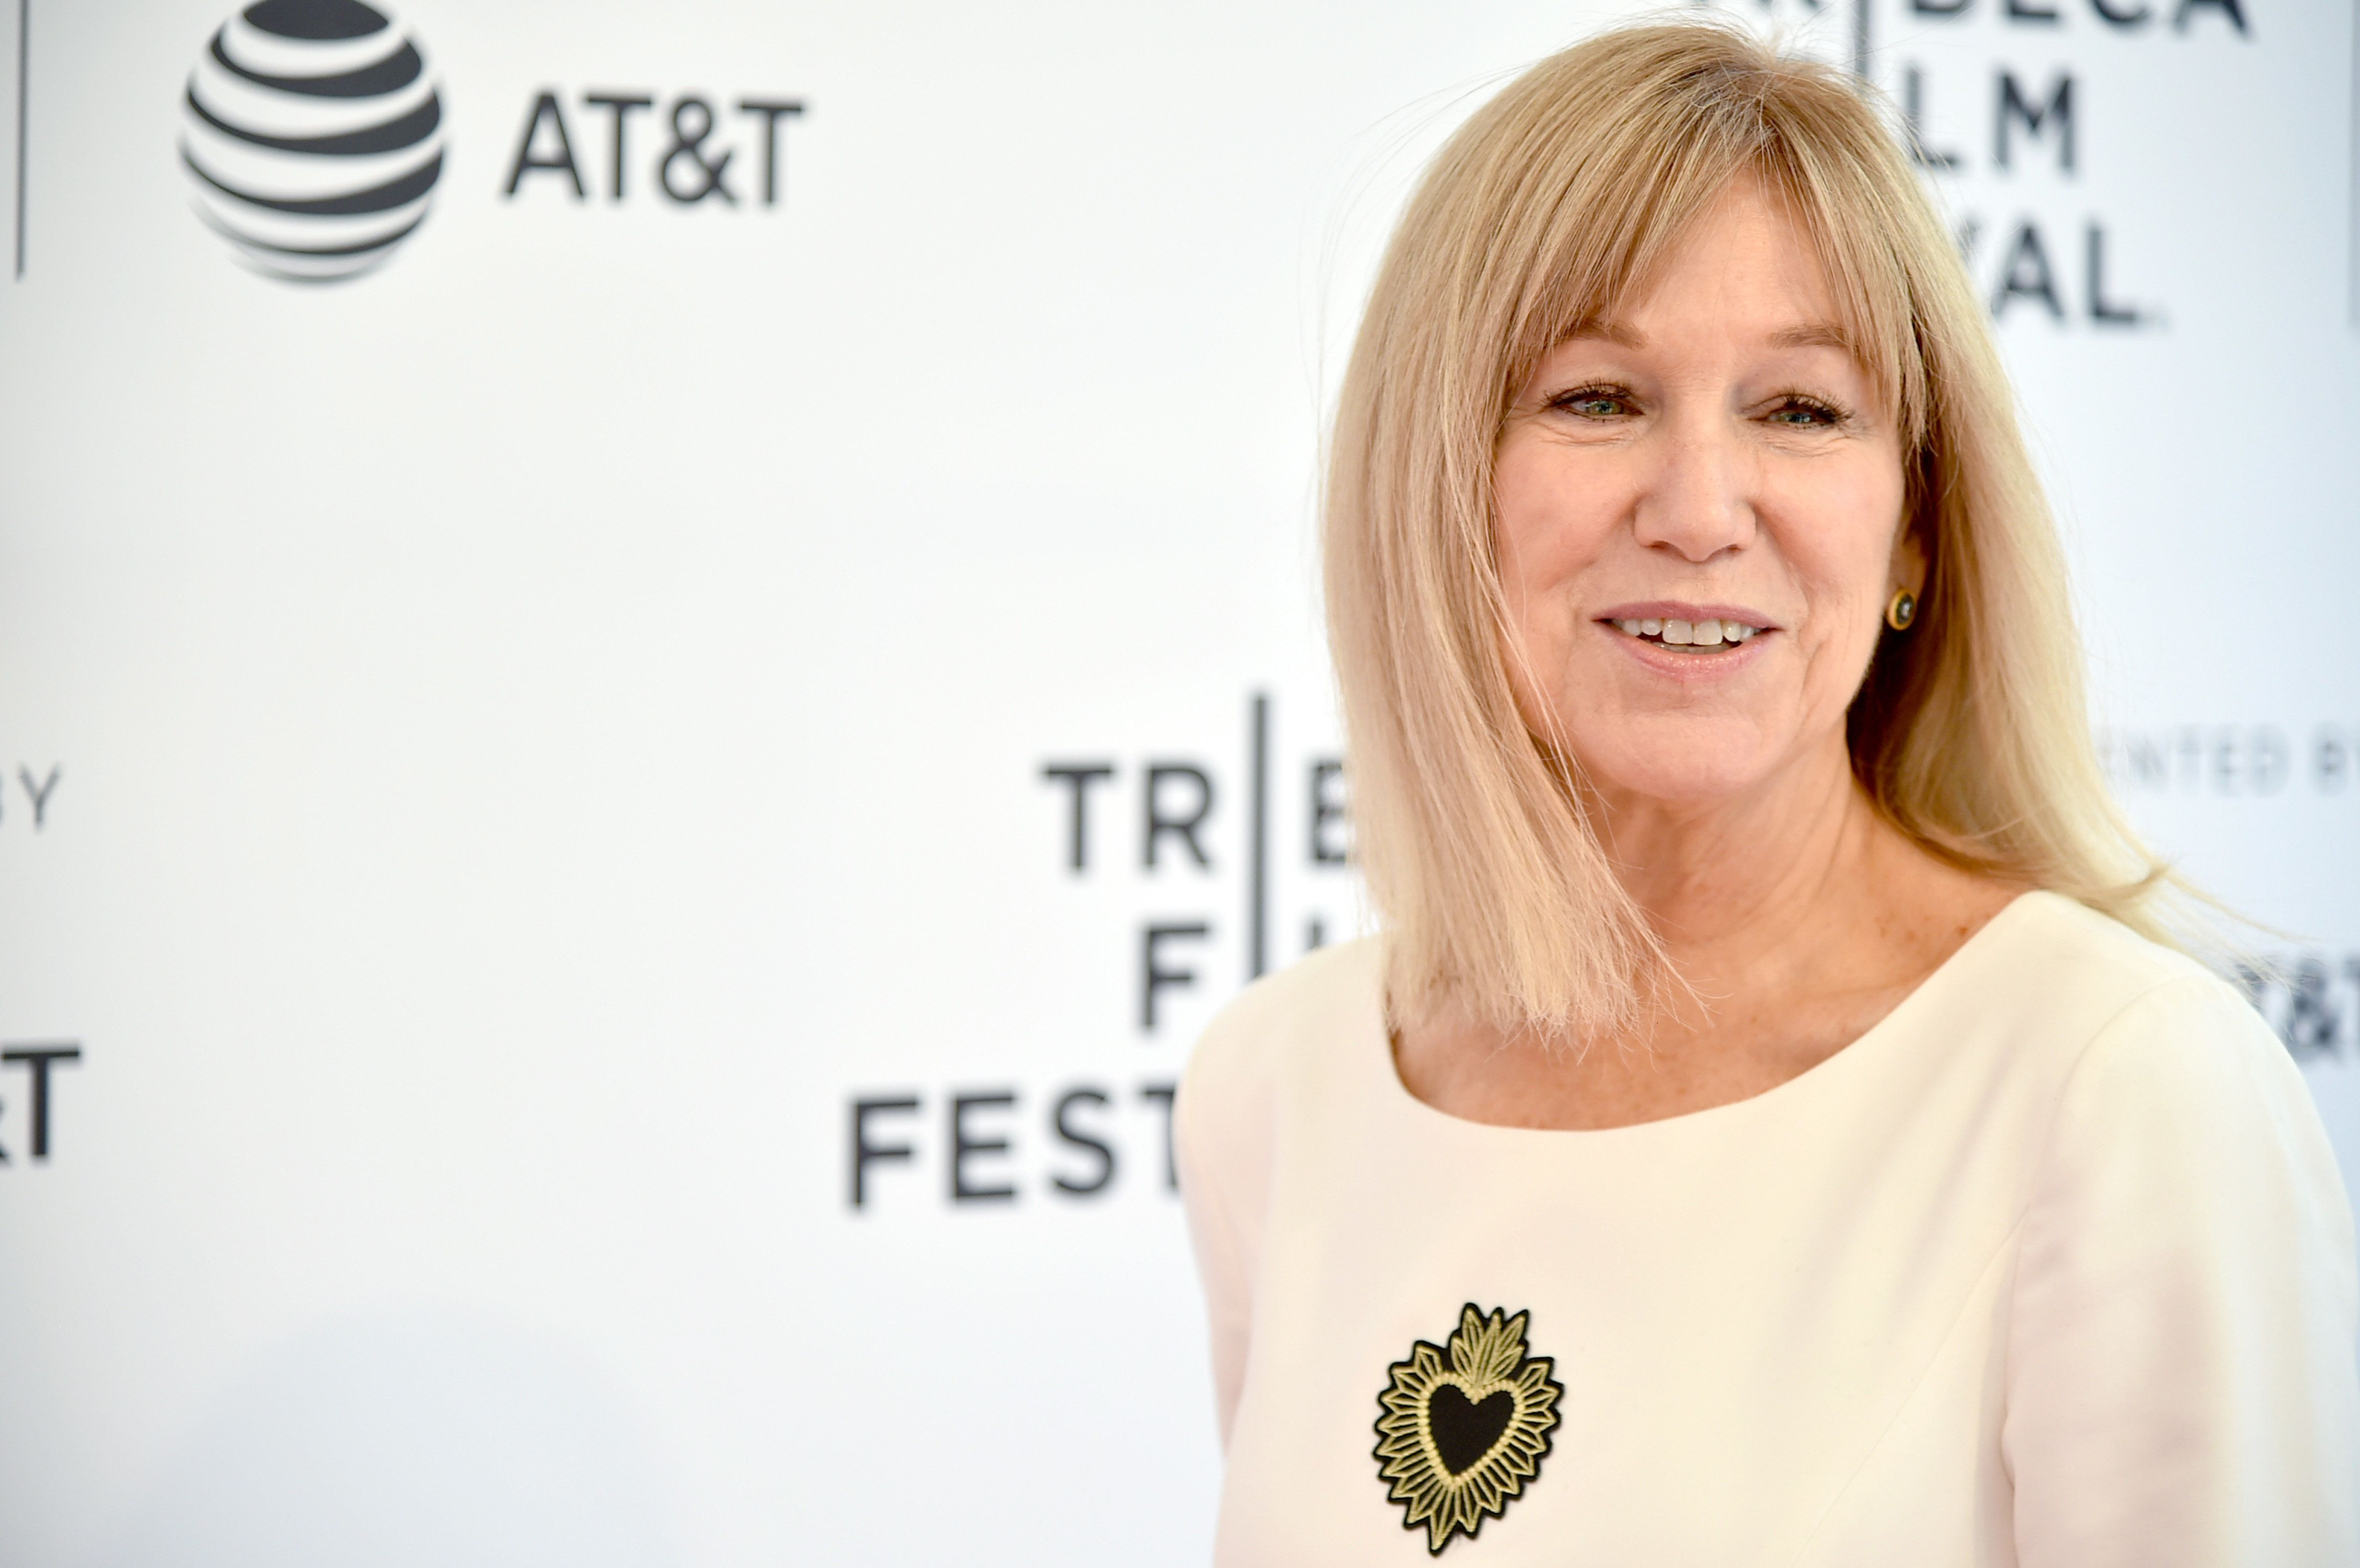 NEW YORK, NY - APRIL 22:  Actress Mary Kay Place attends a screening of 'Diane' during the 2018 Tribeca Film Festival at SVA Theatre on April 22, 2018 in New York City.  (Photo by Mike Coppola/Getty Images for Tribeca Film Festival)